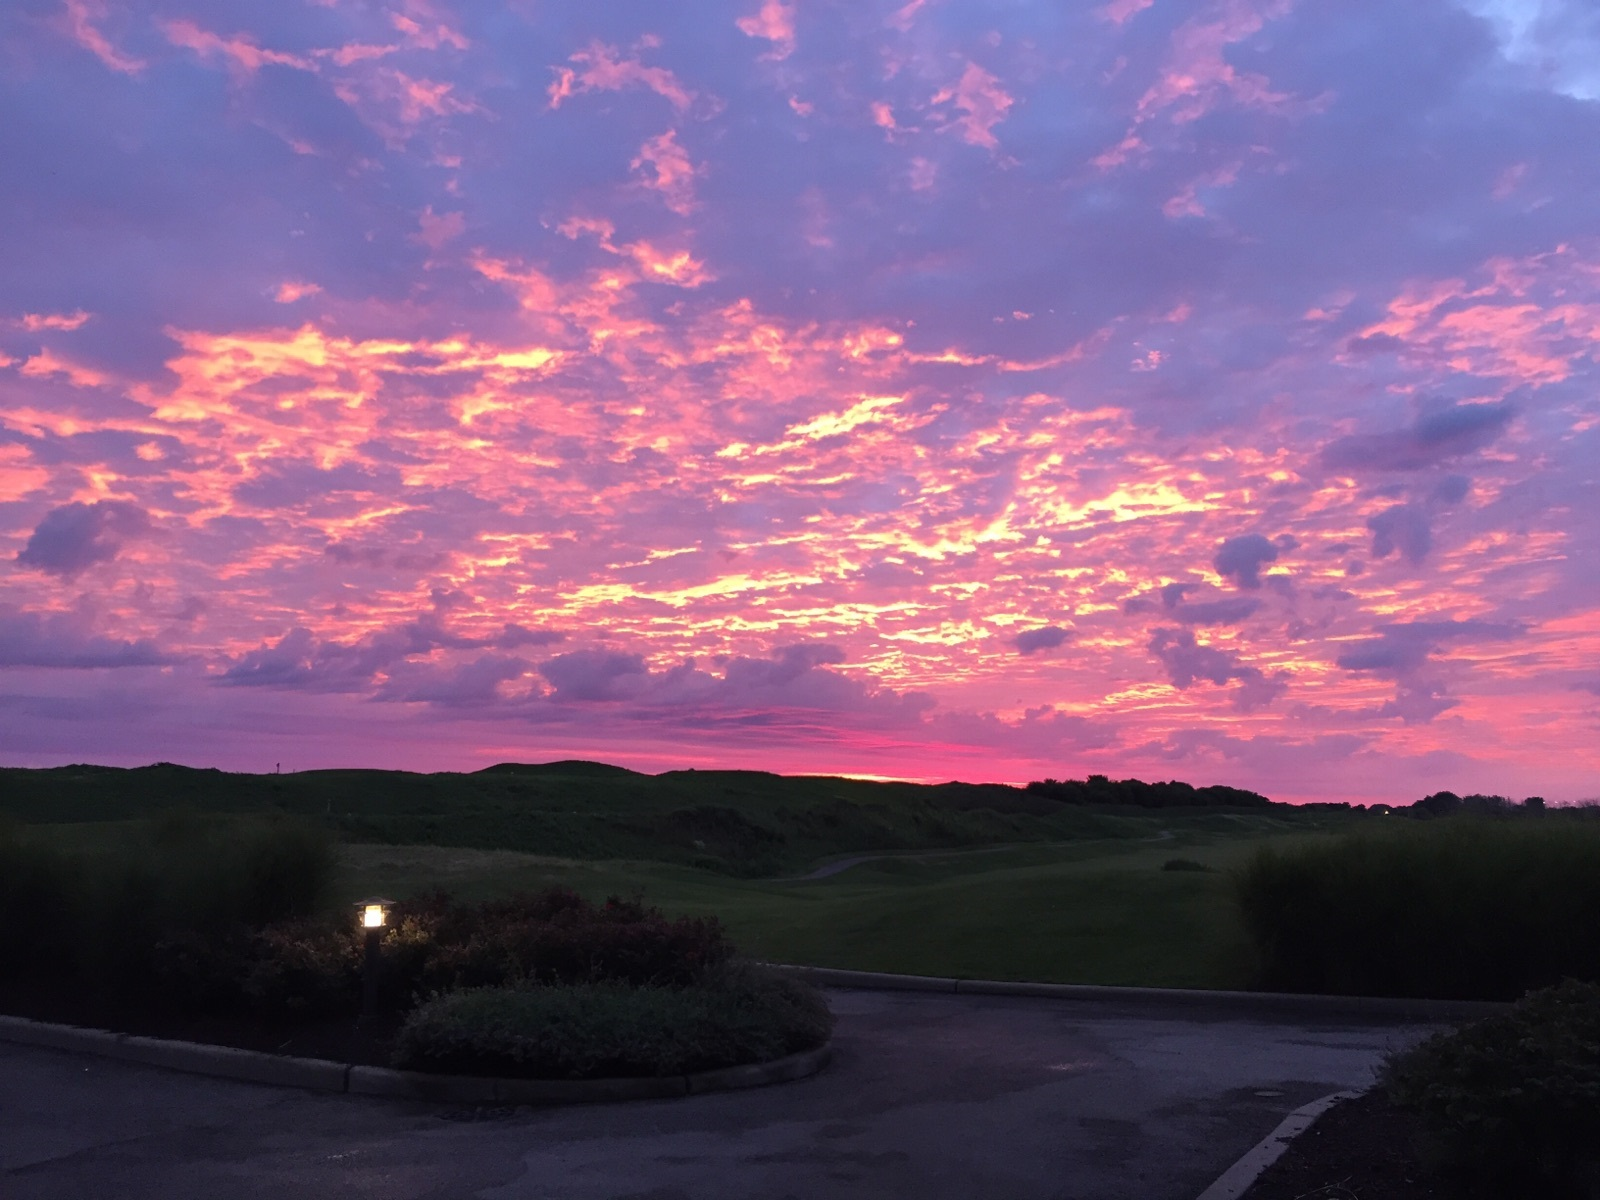 The sun rises on the course at Harborside International Golf Center